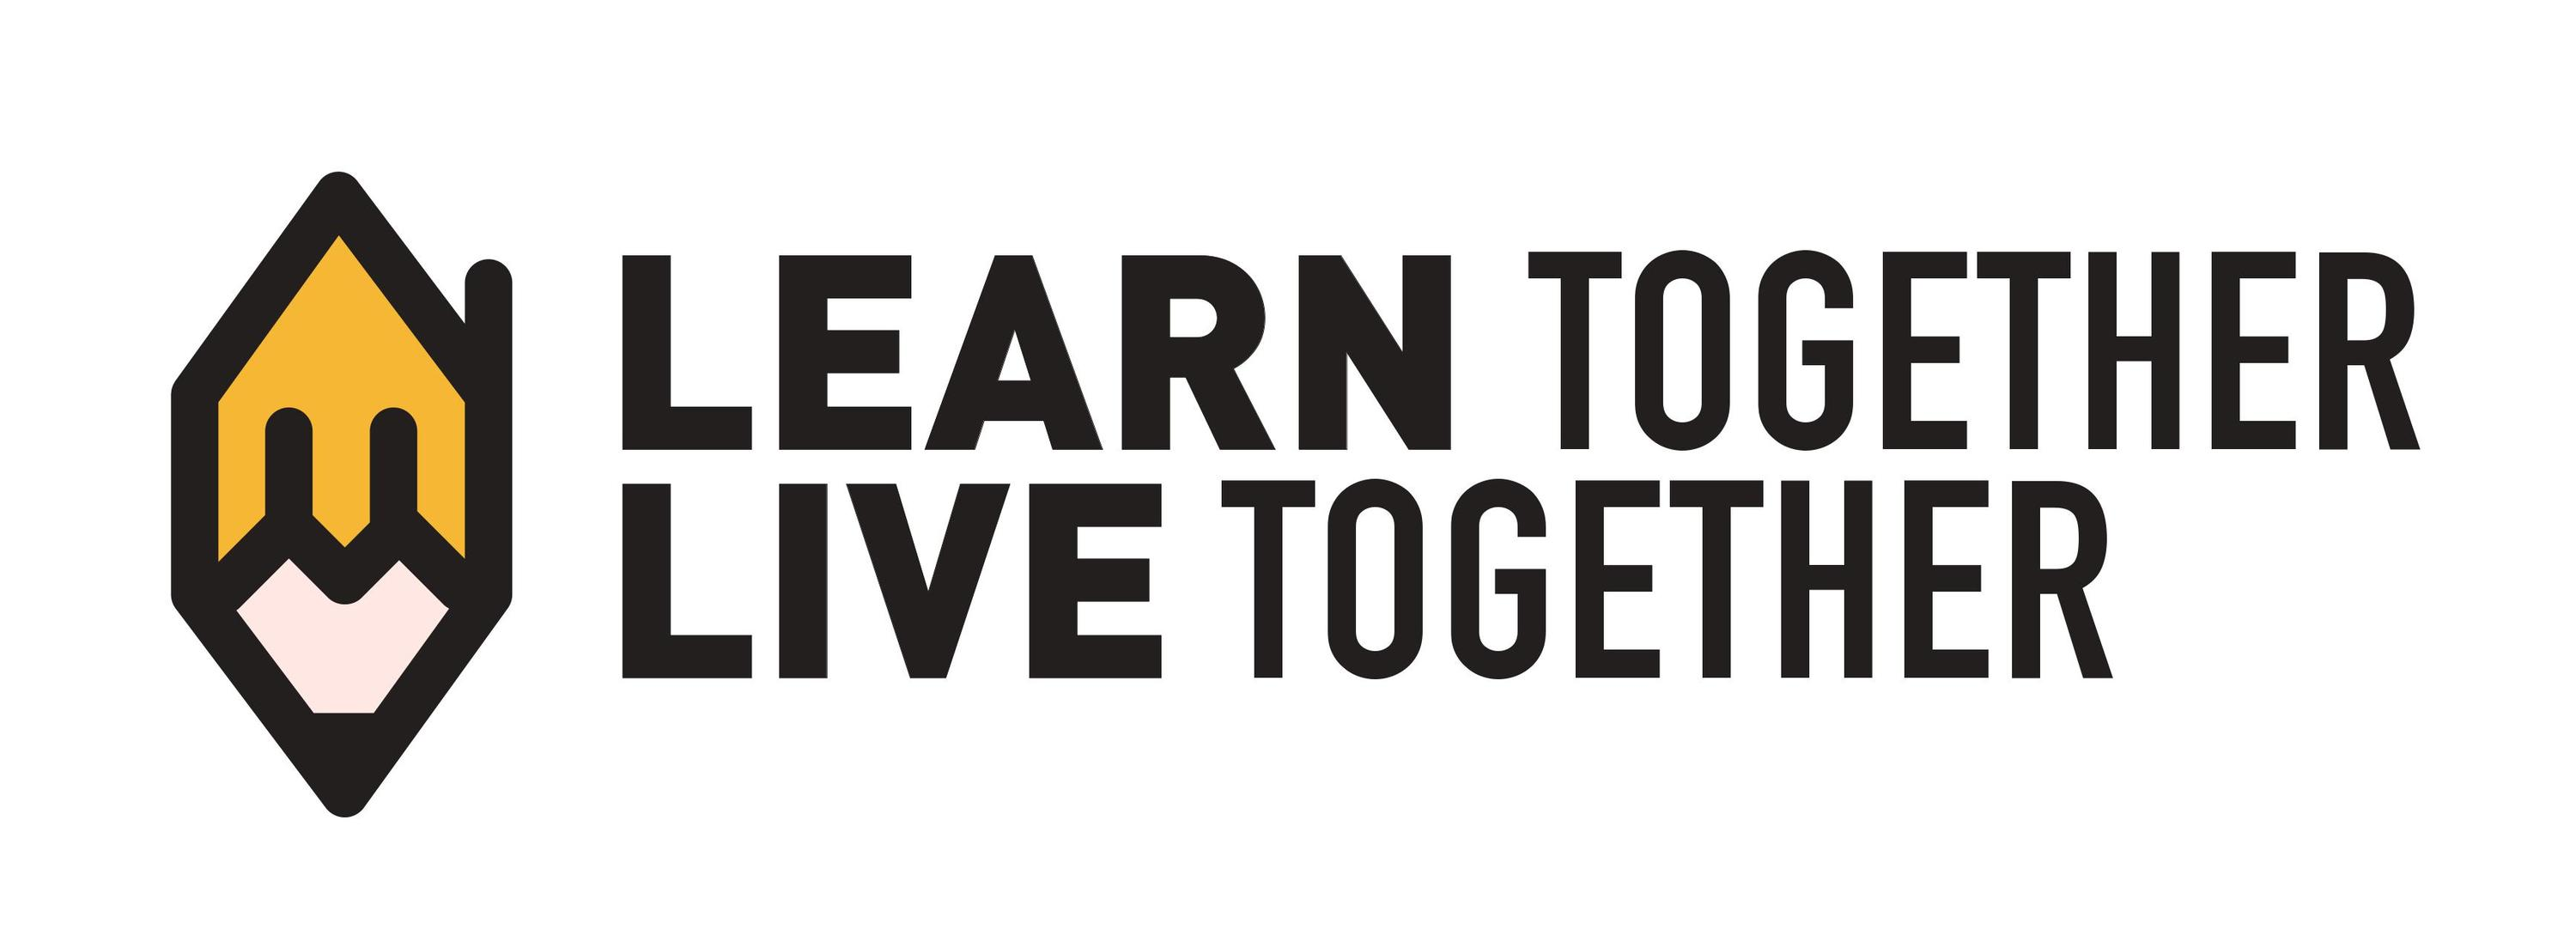 Learn Together, Live Together